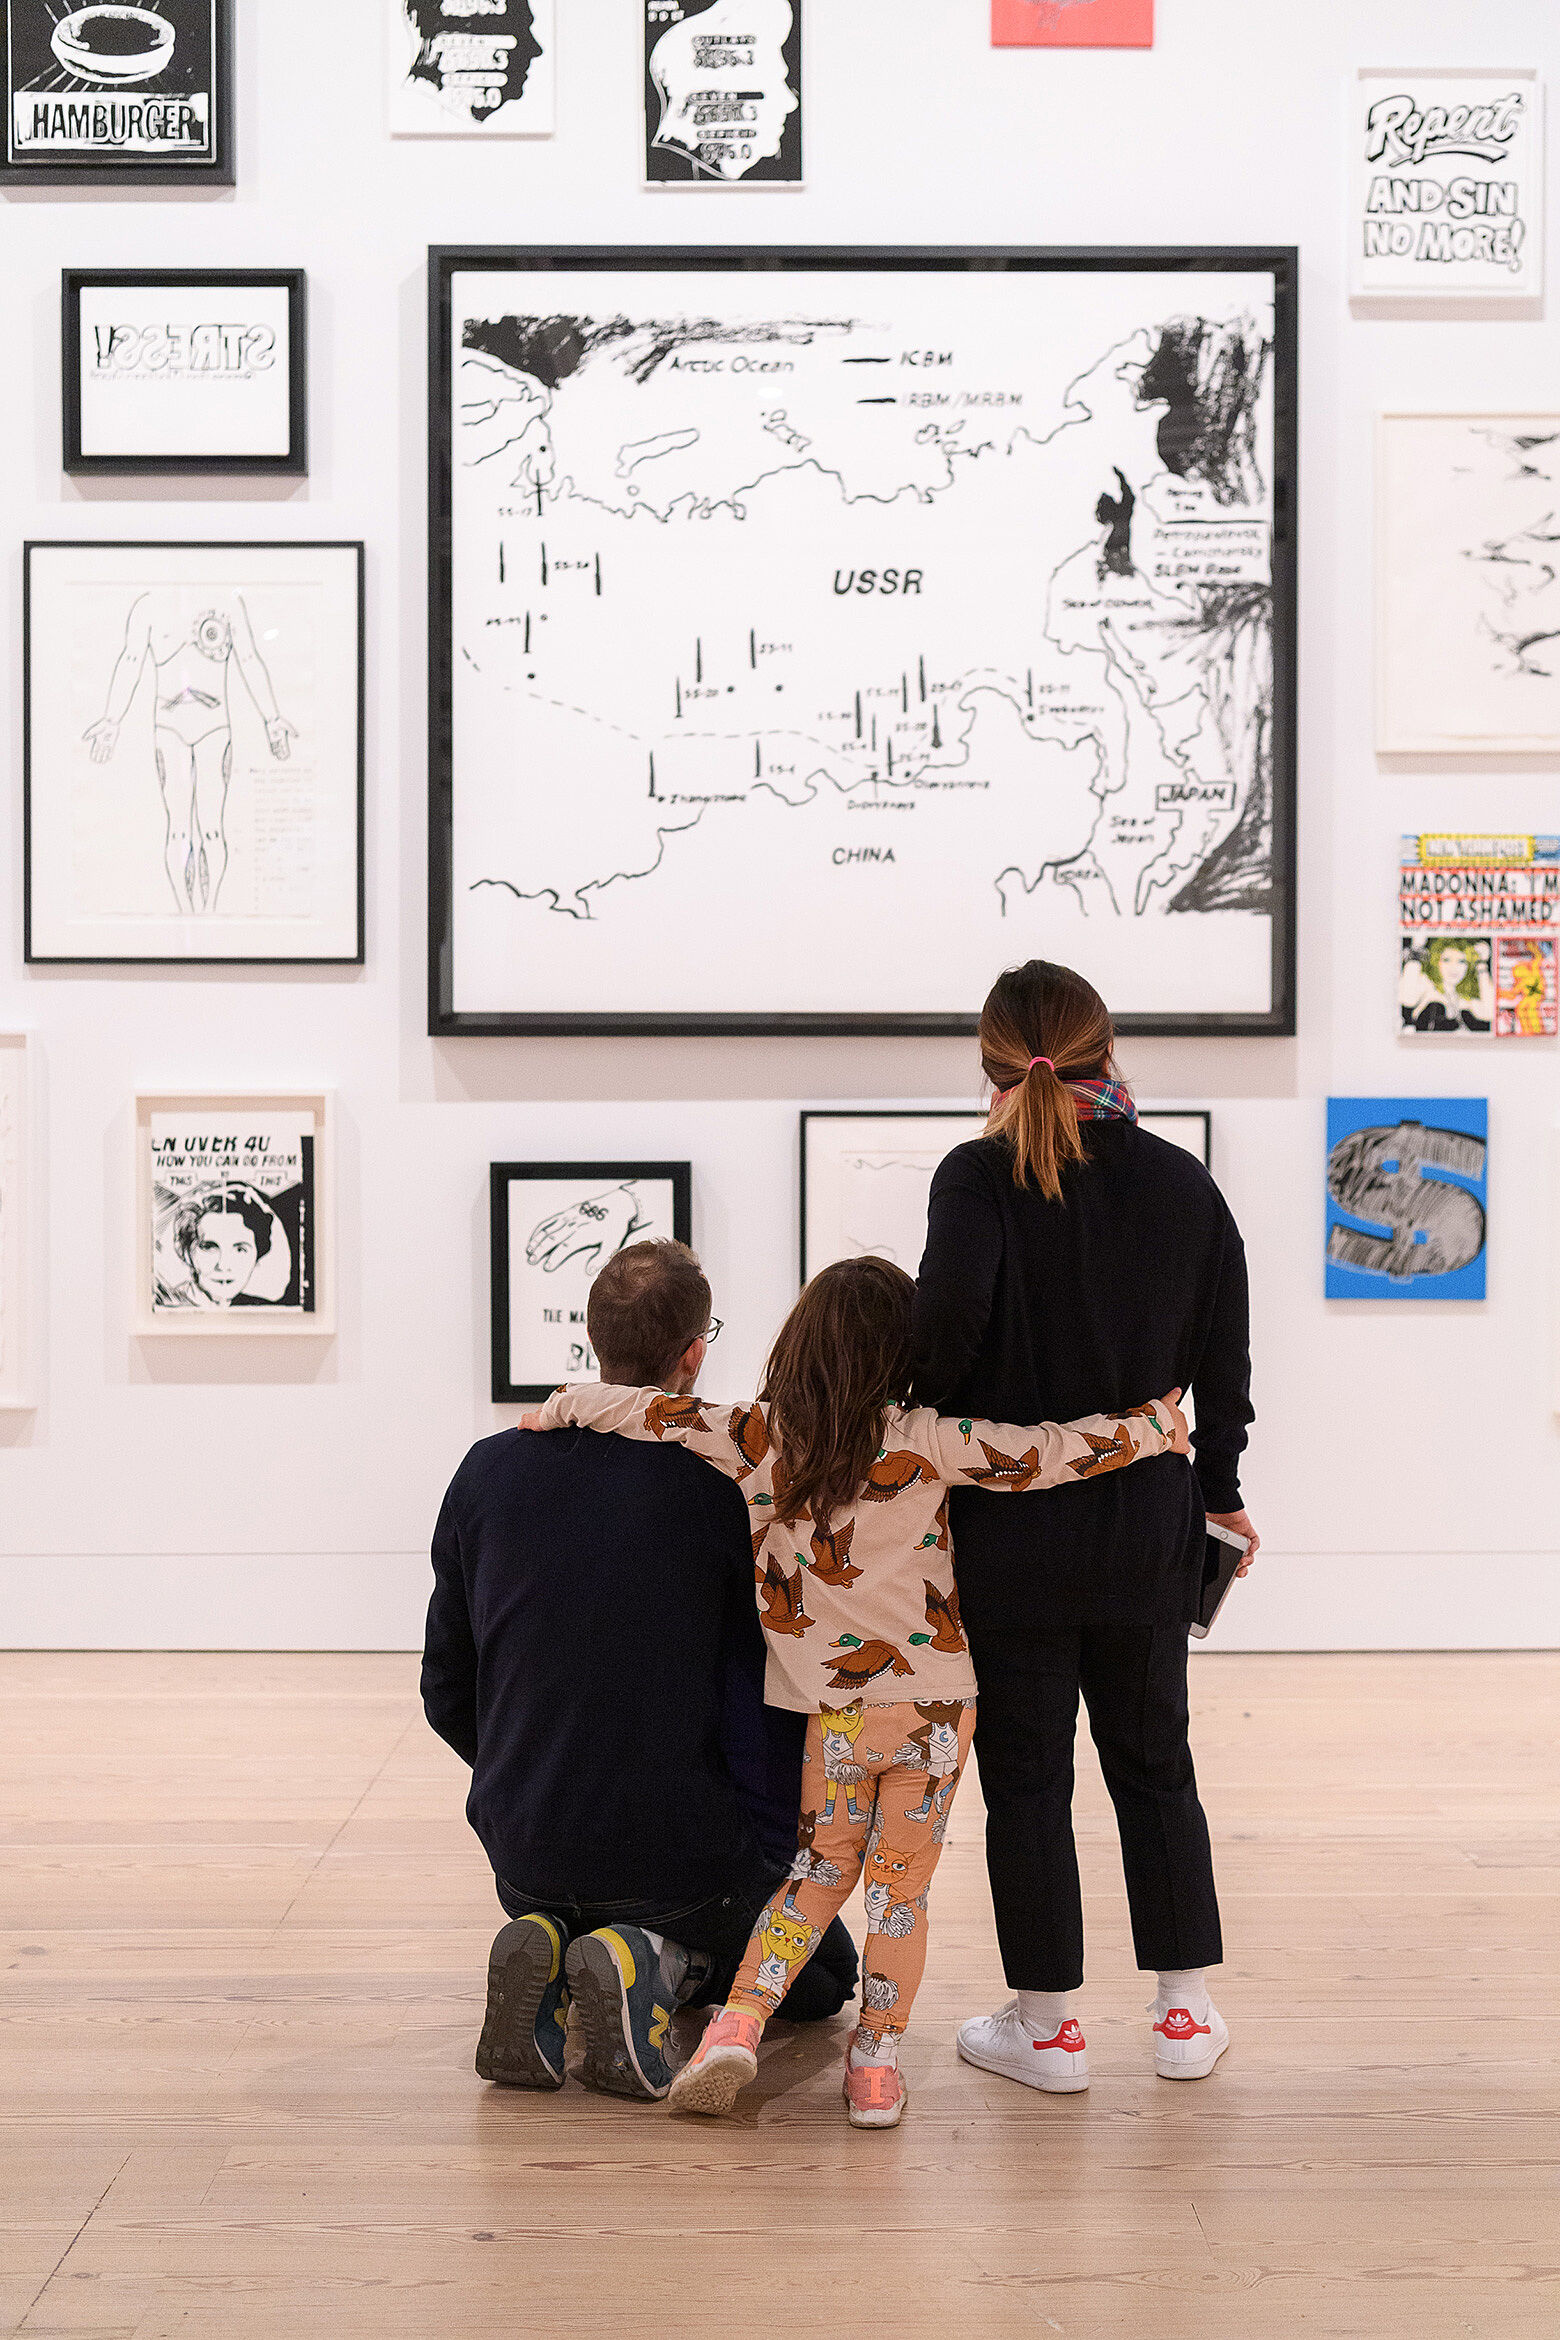 Families exploring the galleries at the Whitney